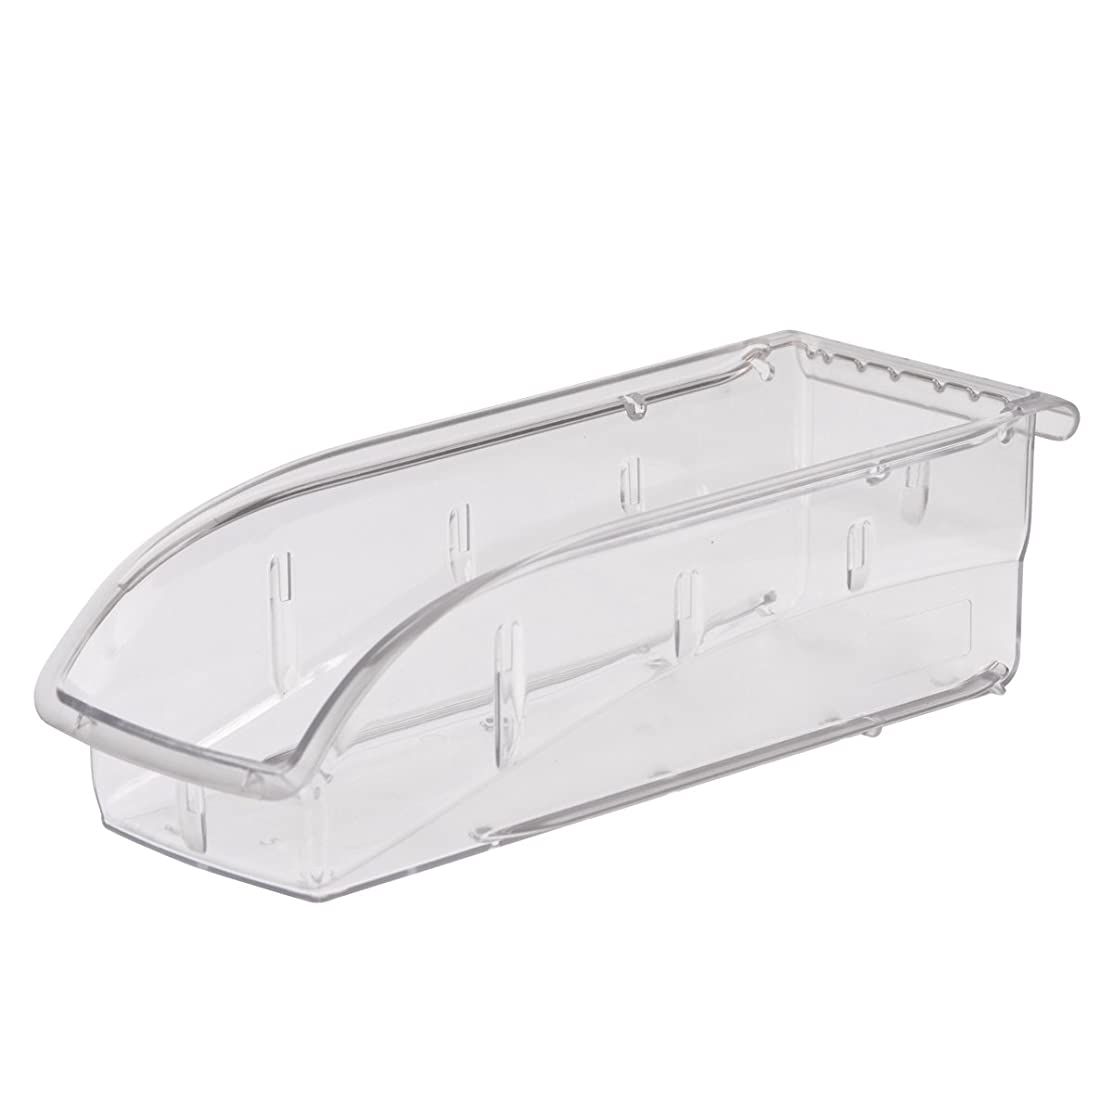 Akro-Mils 305A5 Insight Ultra-Clear Plastic Hanging and Stacking Storage Bin, 10-7/8-Inch Long by 4-1/8-Inch Wide by 3-1/4-Inch Wide, Case of 12